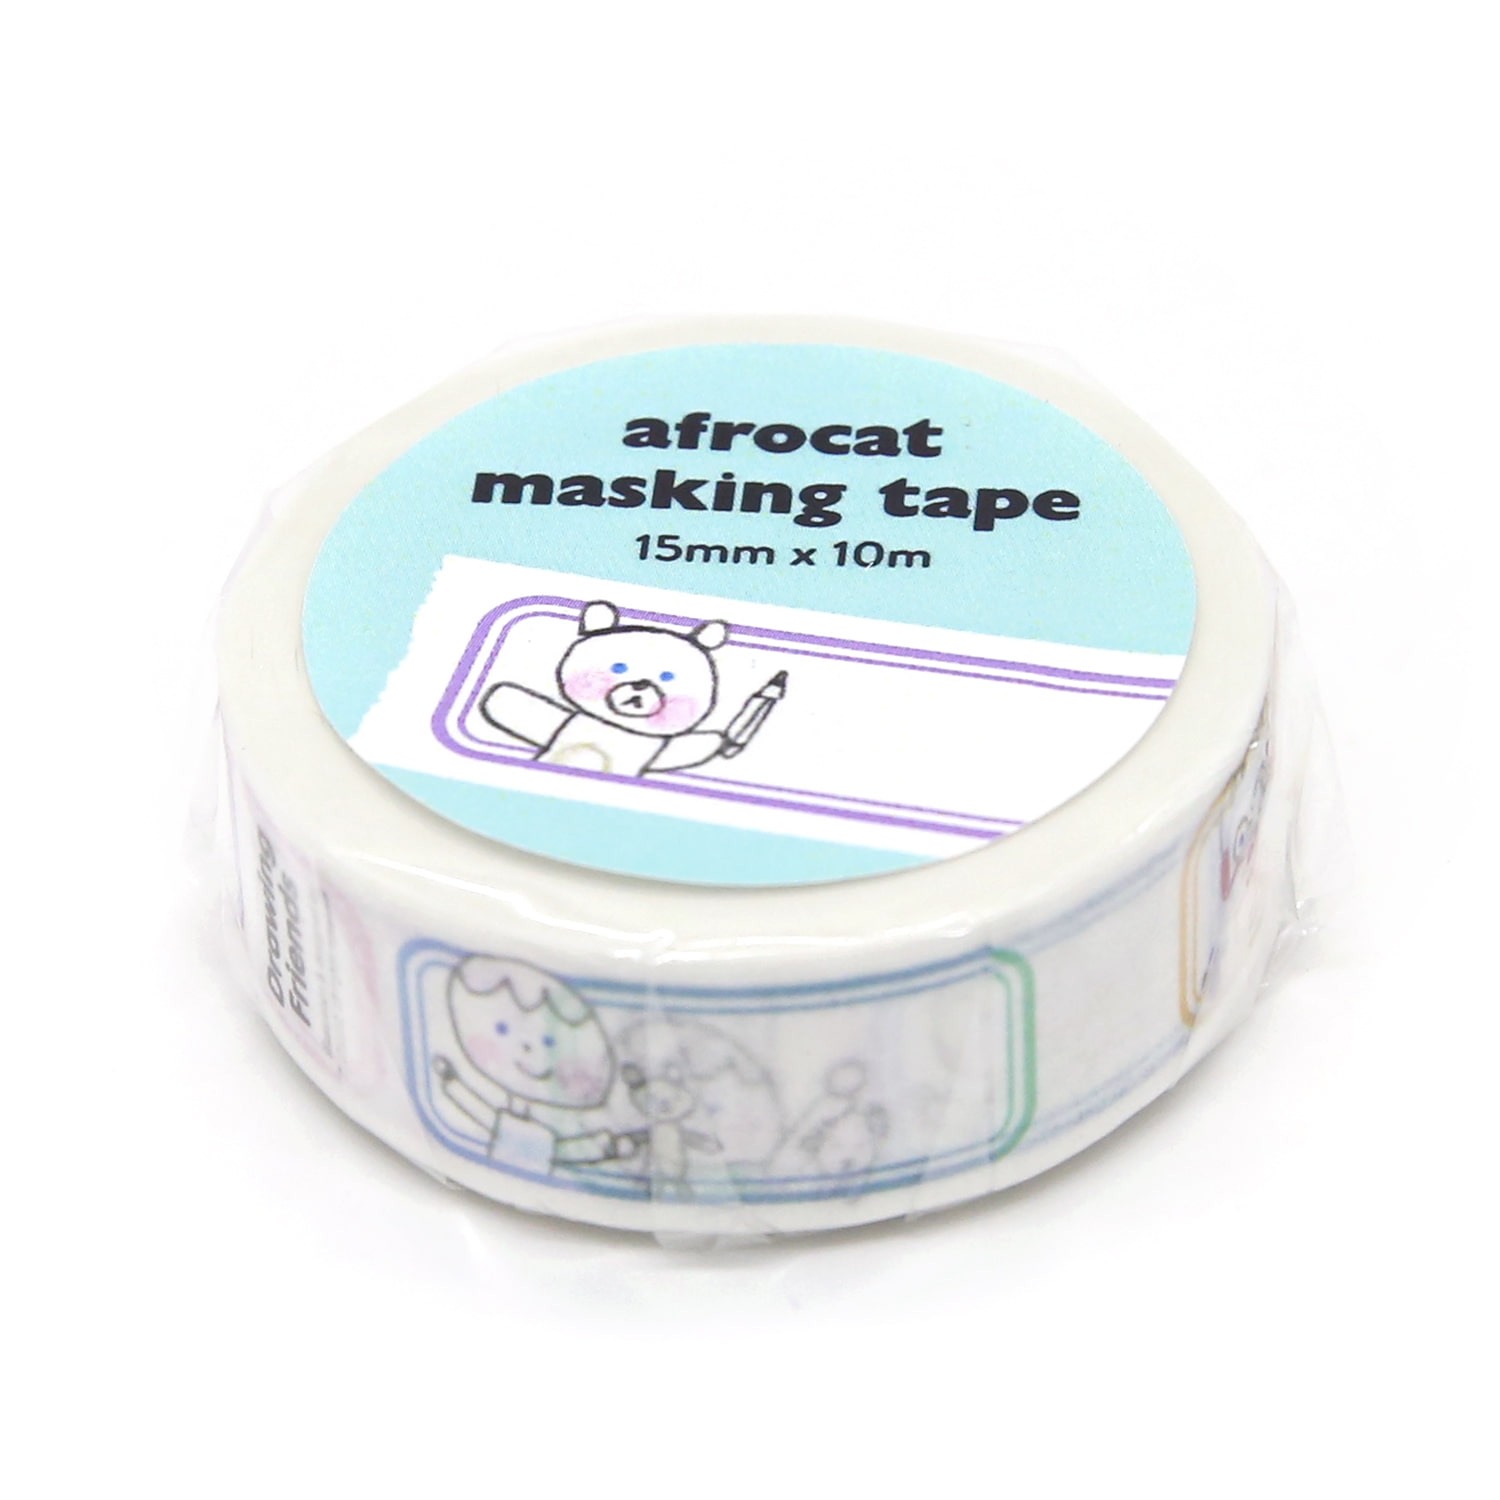 [afrocat masking tape] 8. Drawing friends_name label 15mm